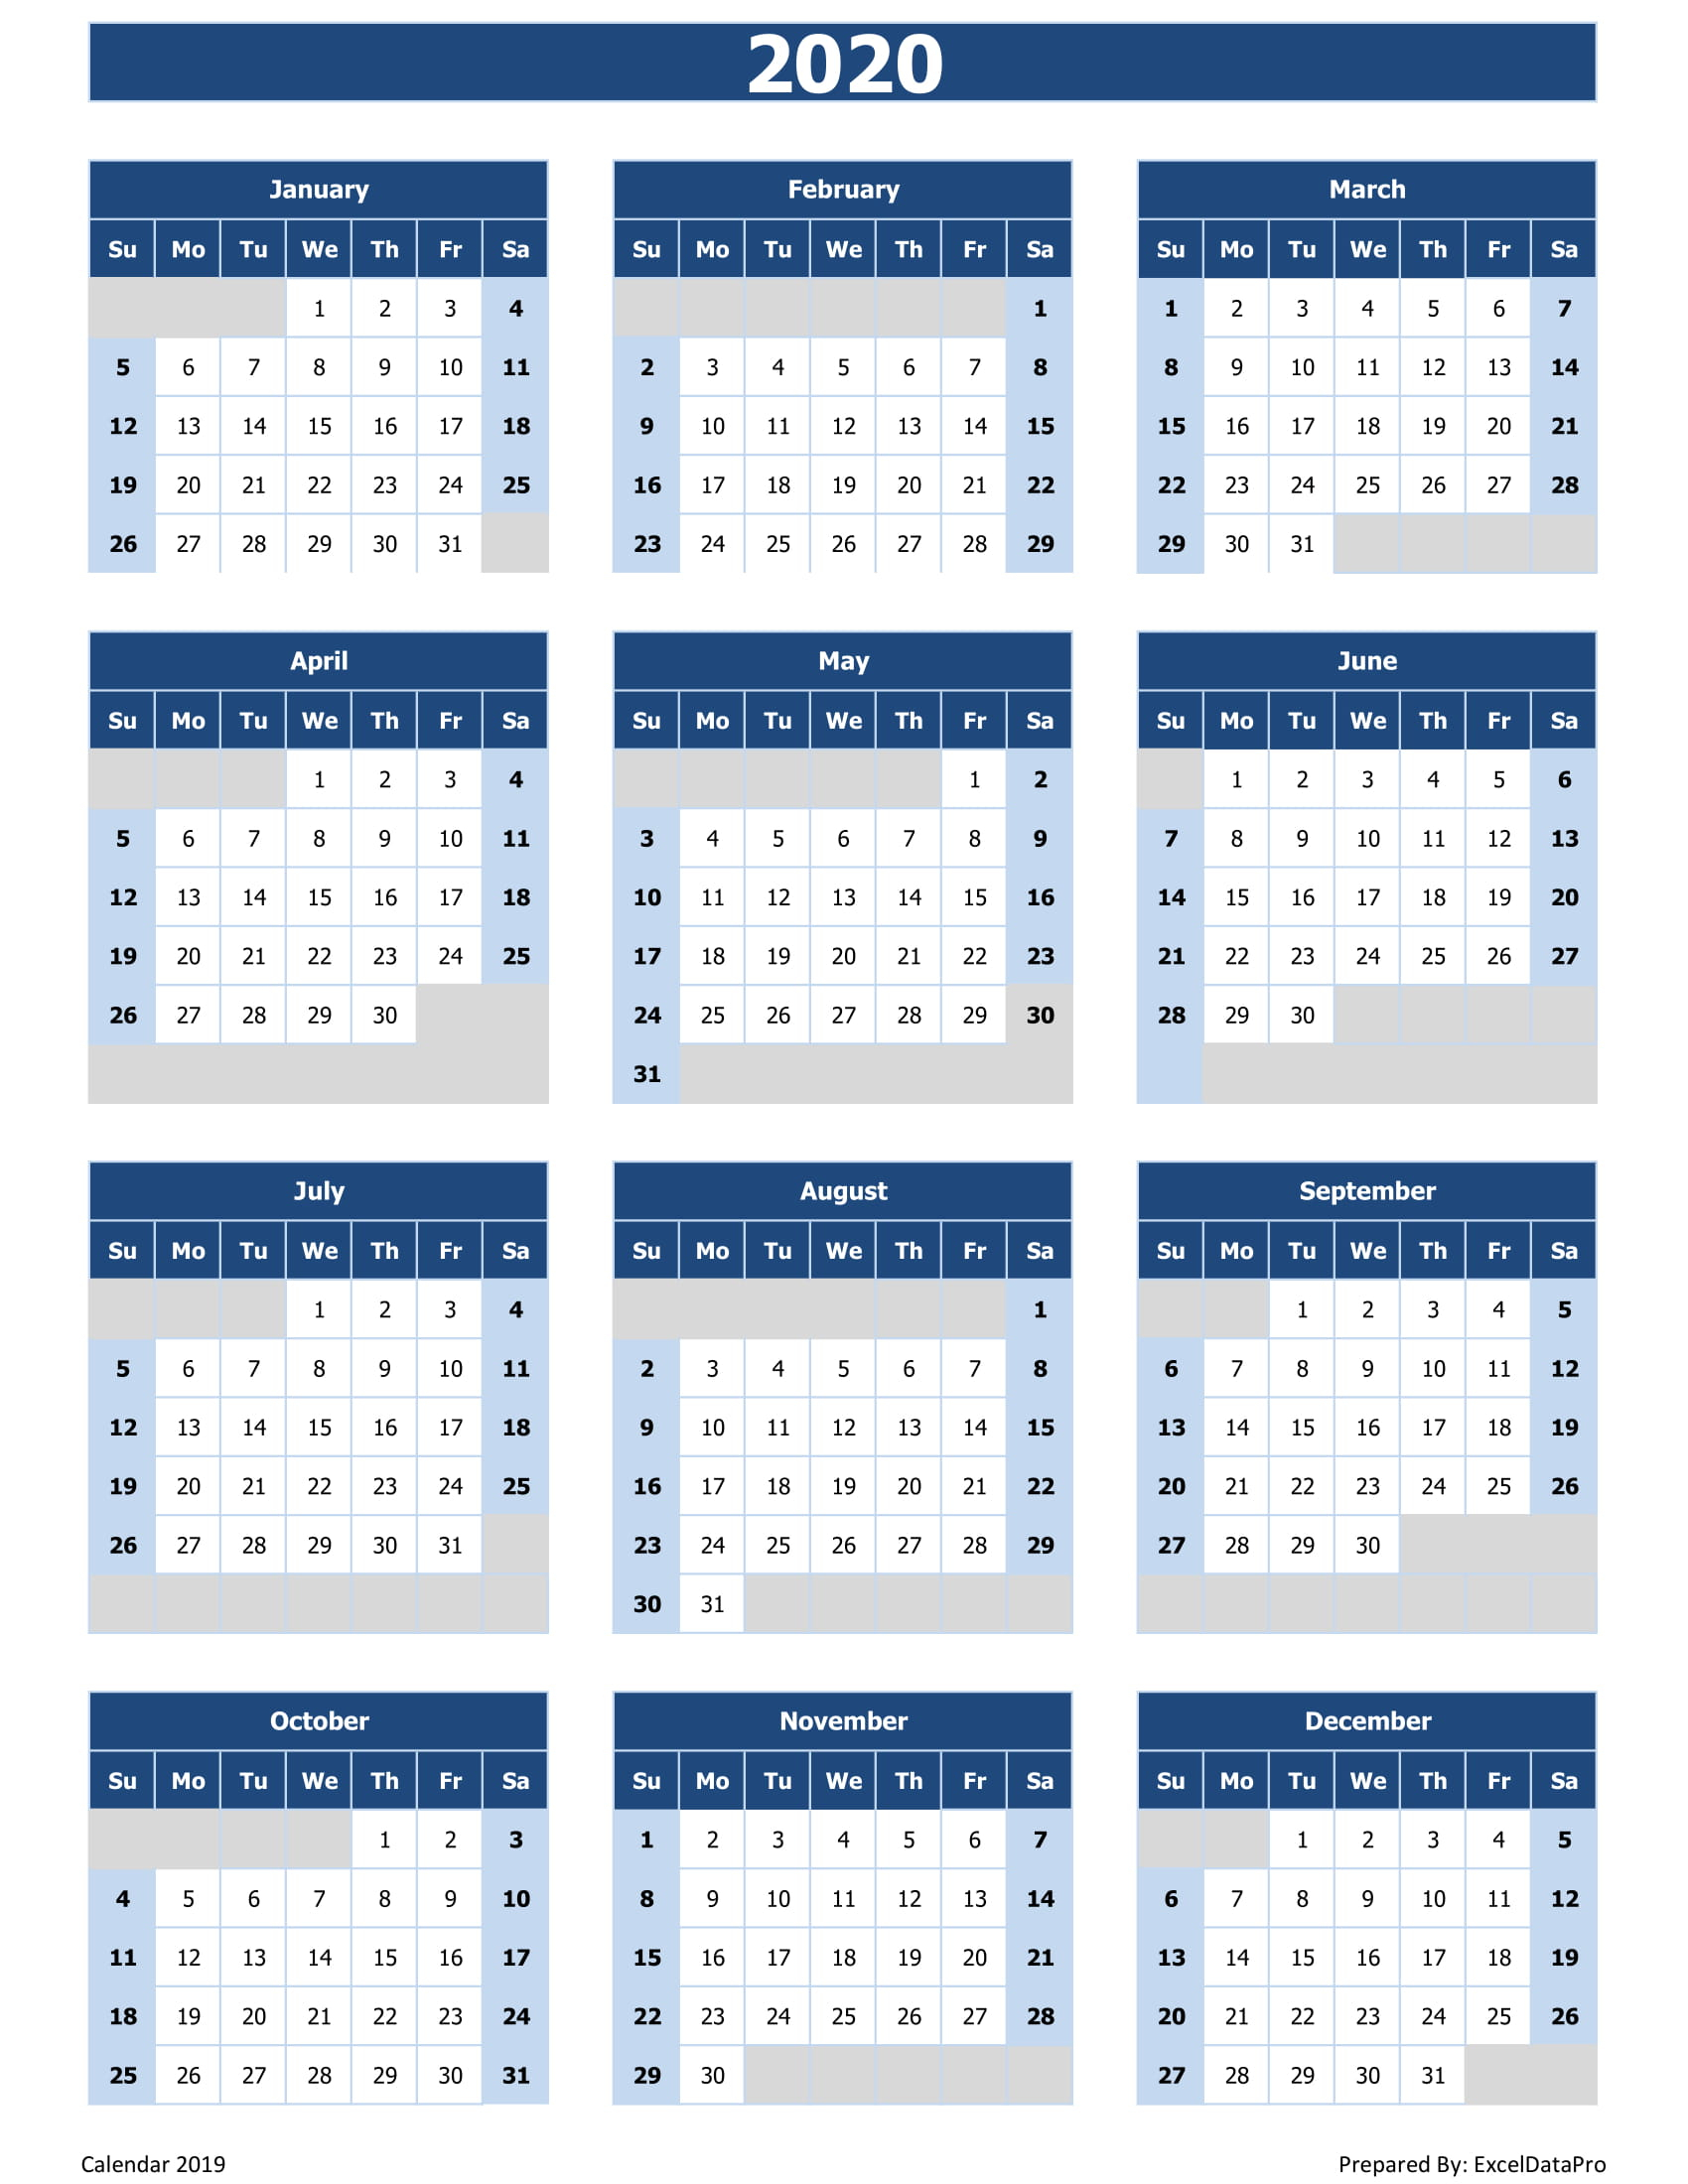 2020 Calendar Excel Templates, Printable Pdfs & Images with Kalendar Excel 2020